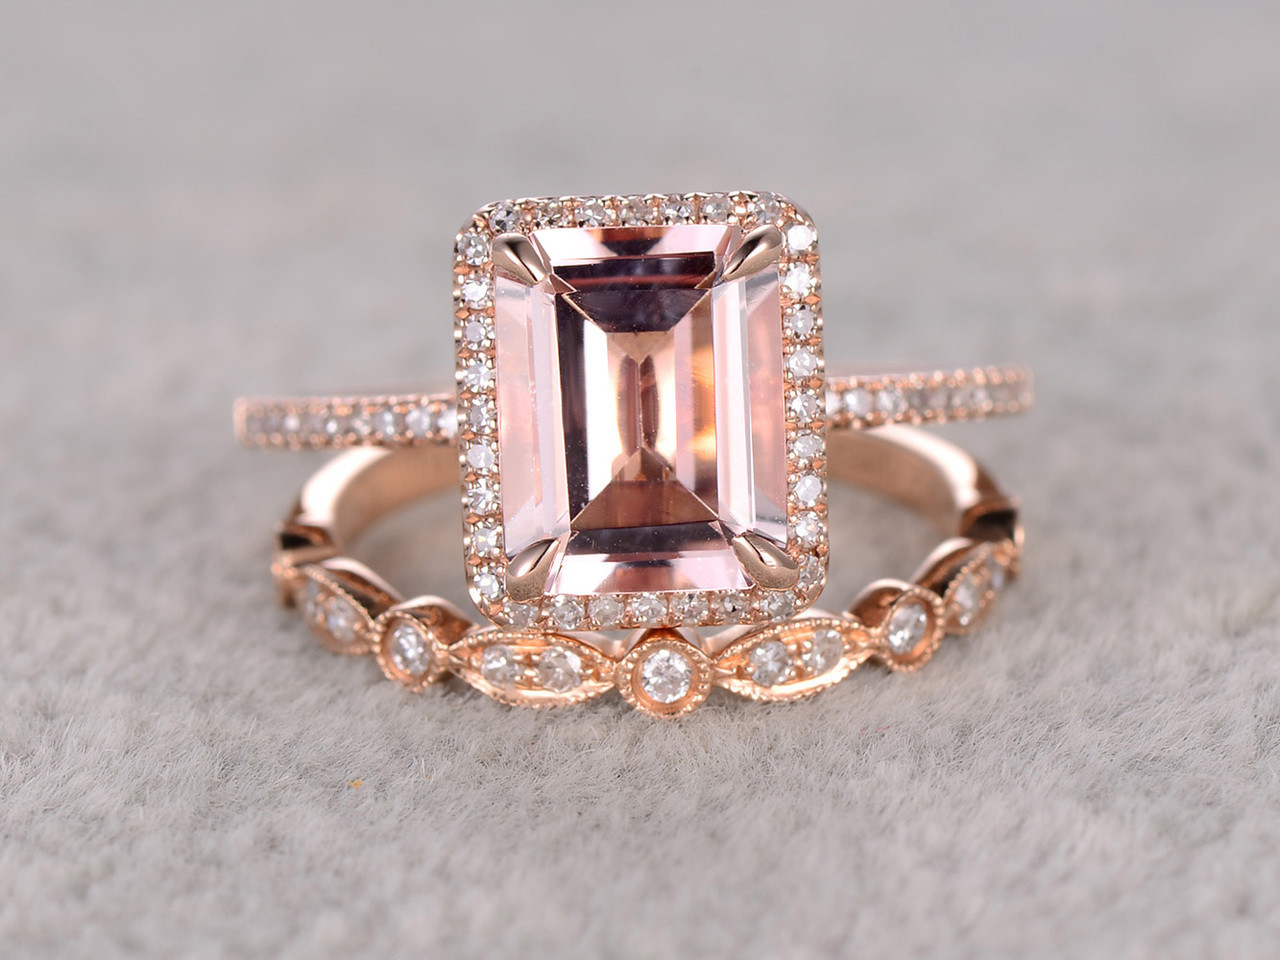 2 5 To 3 Carat Emerald Cut Morganite Engagement Ring Set Diamond Bridal 14k Rose Gold